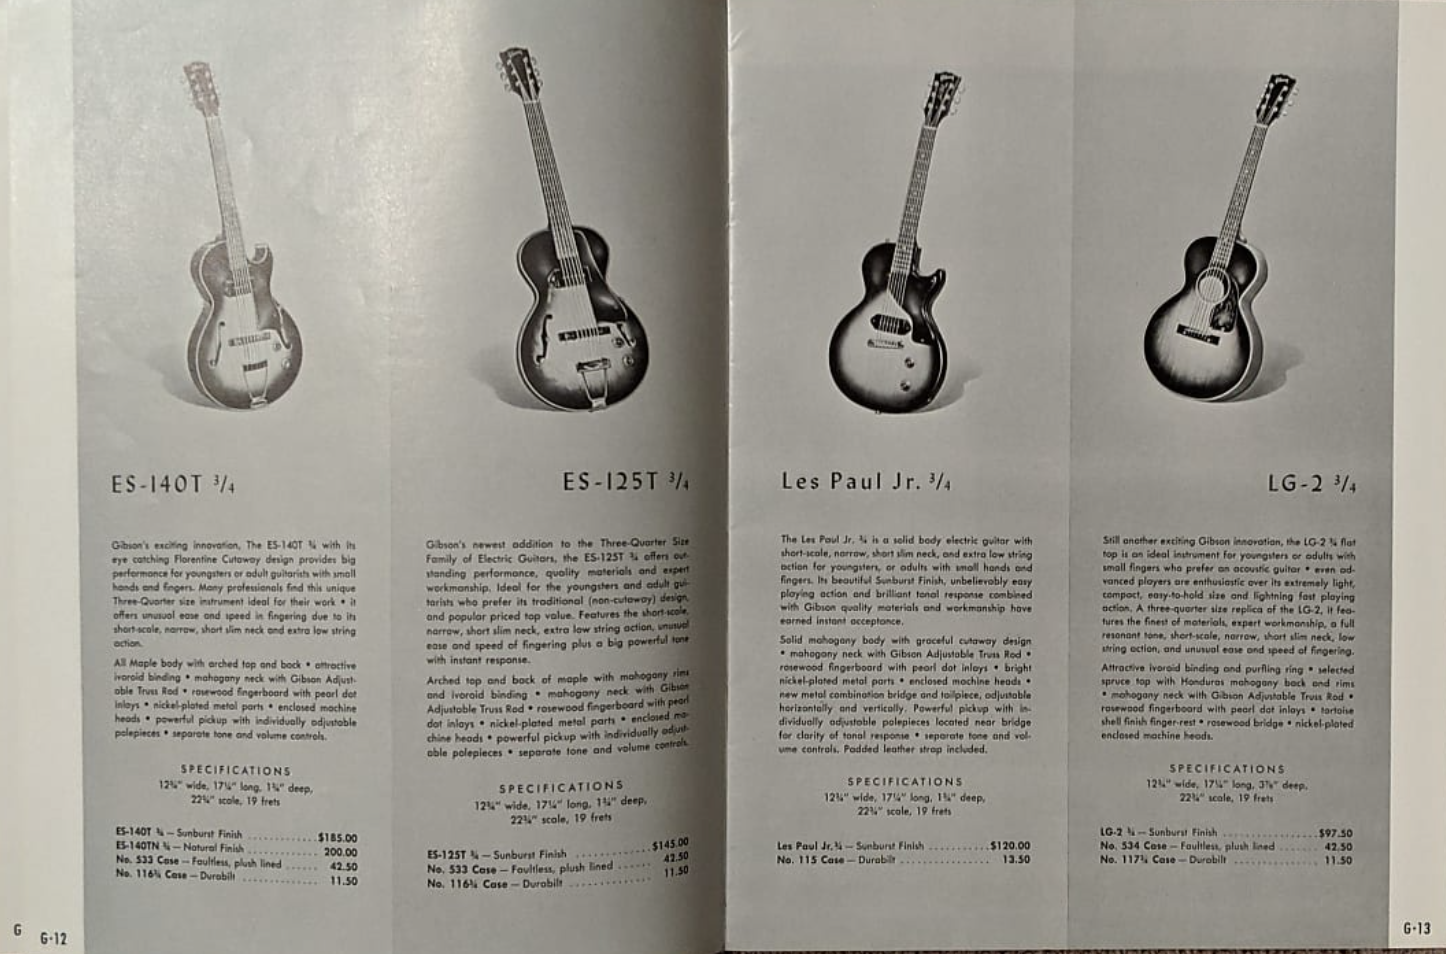 1956/7 Gibson ES-140T - Natural-59-3-4-gibson-png